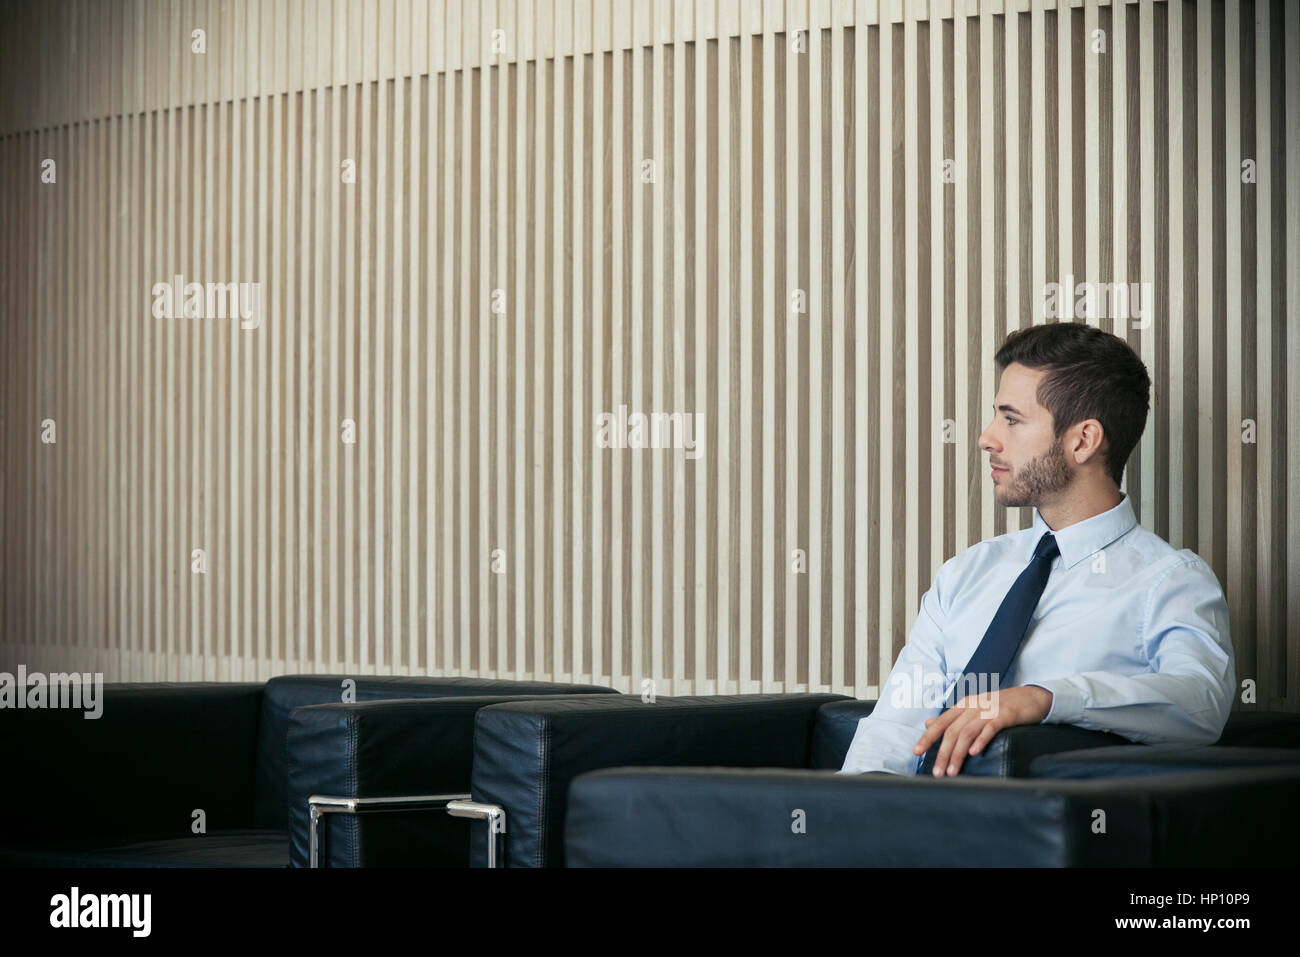 Businessman sitting in waiting room - Stock Image